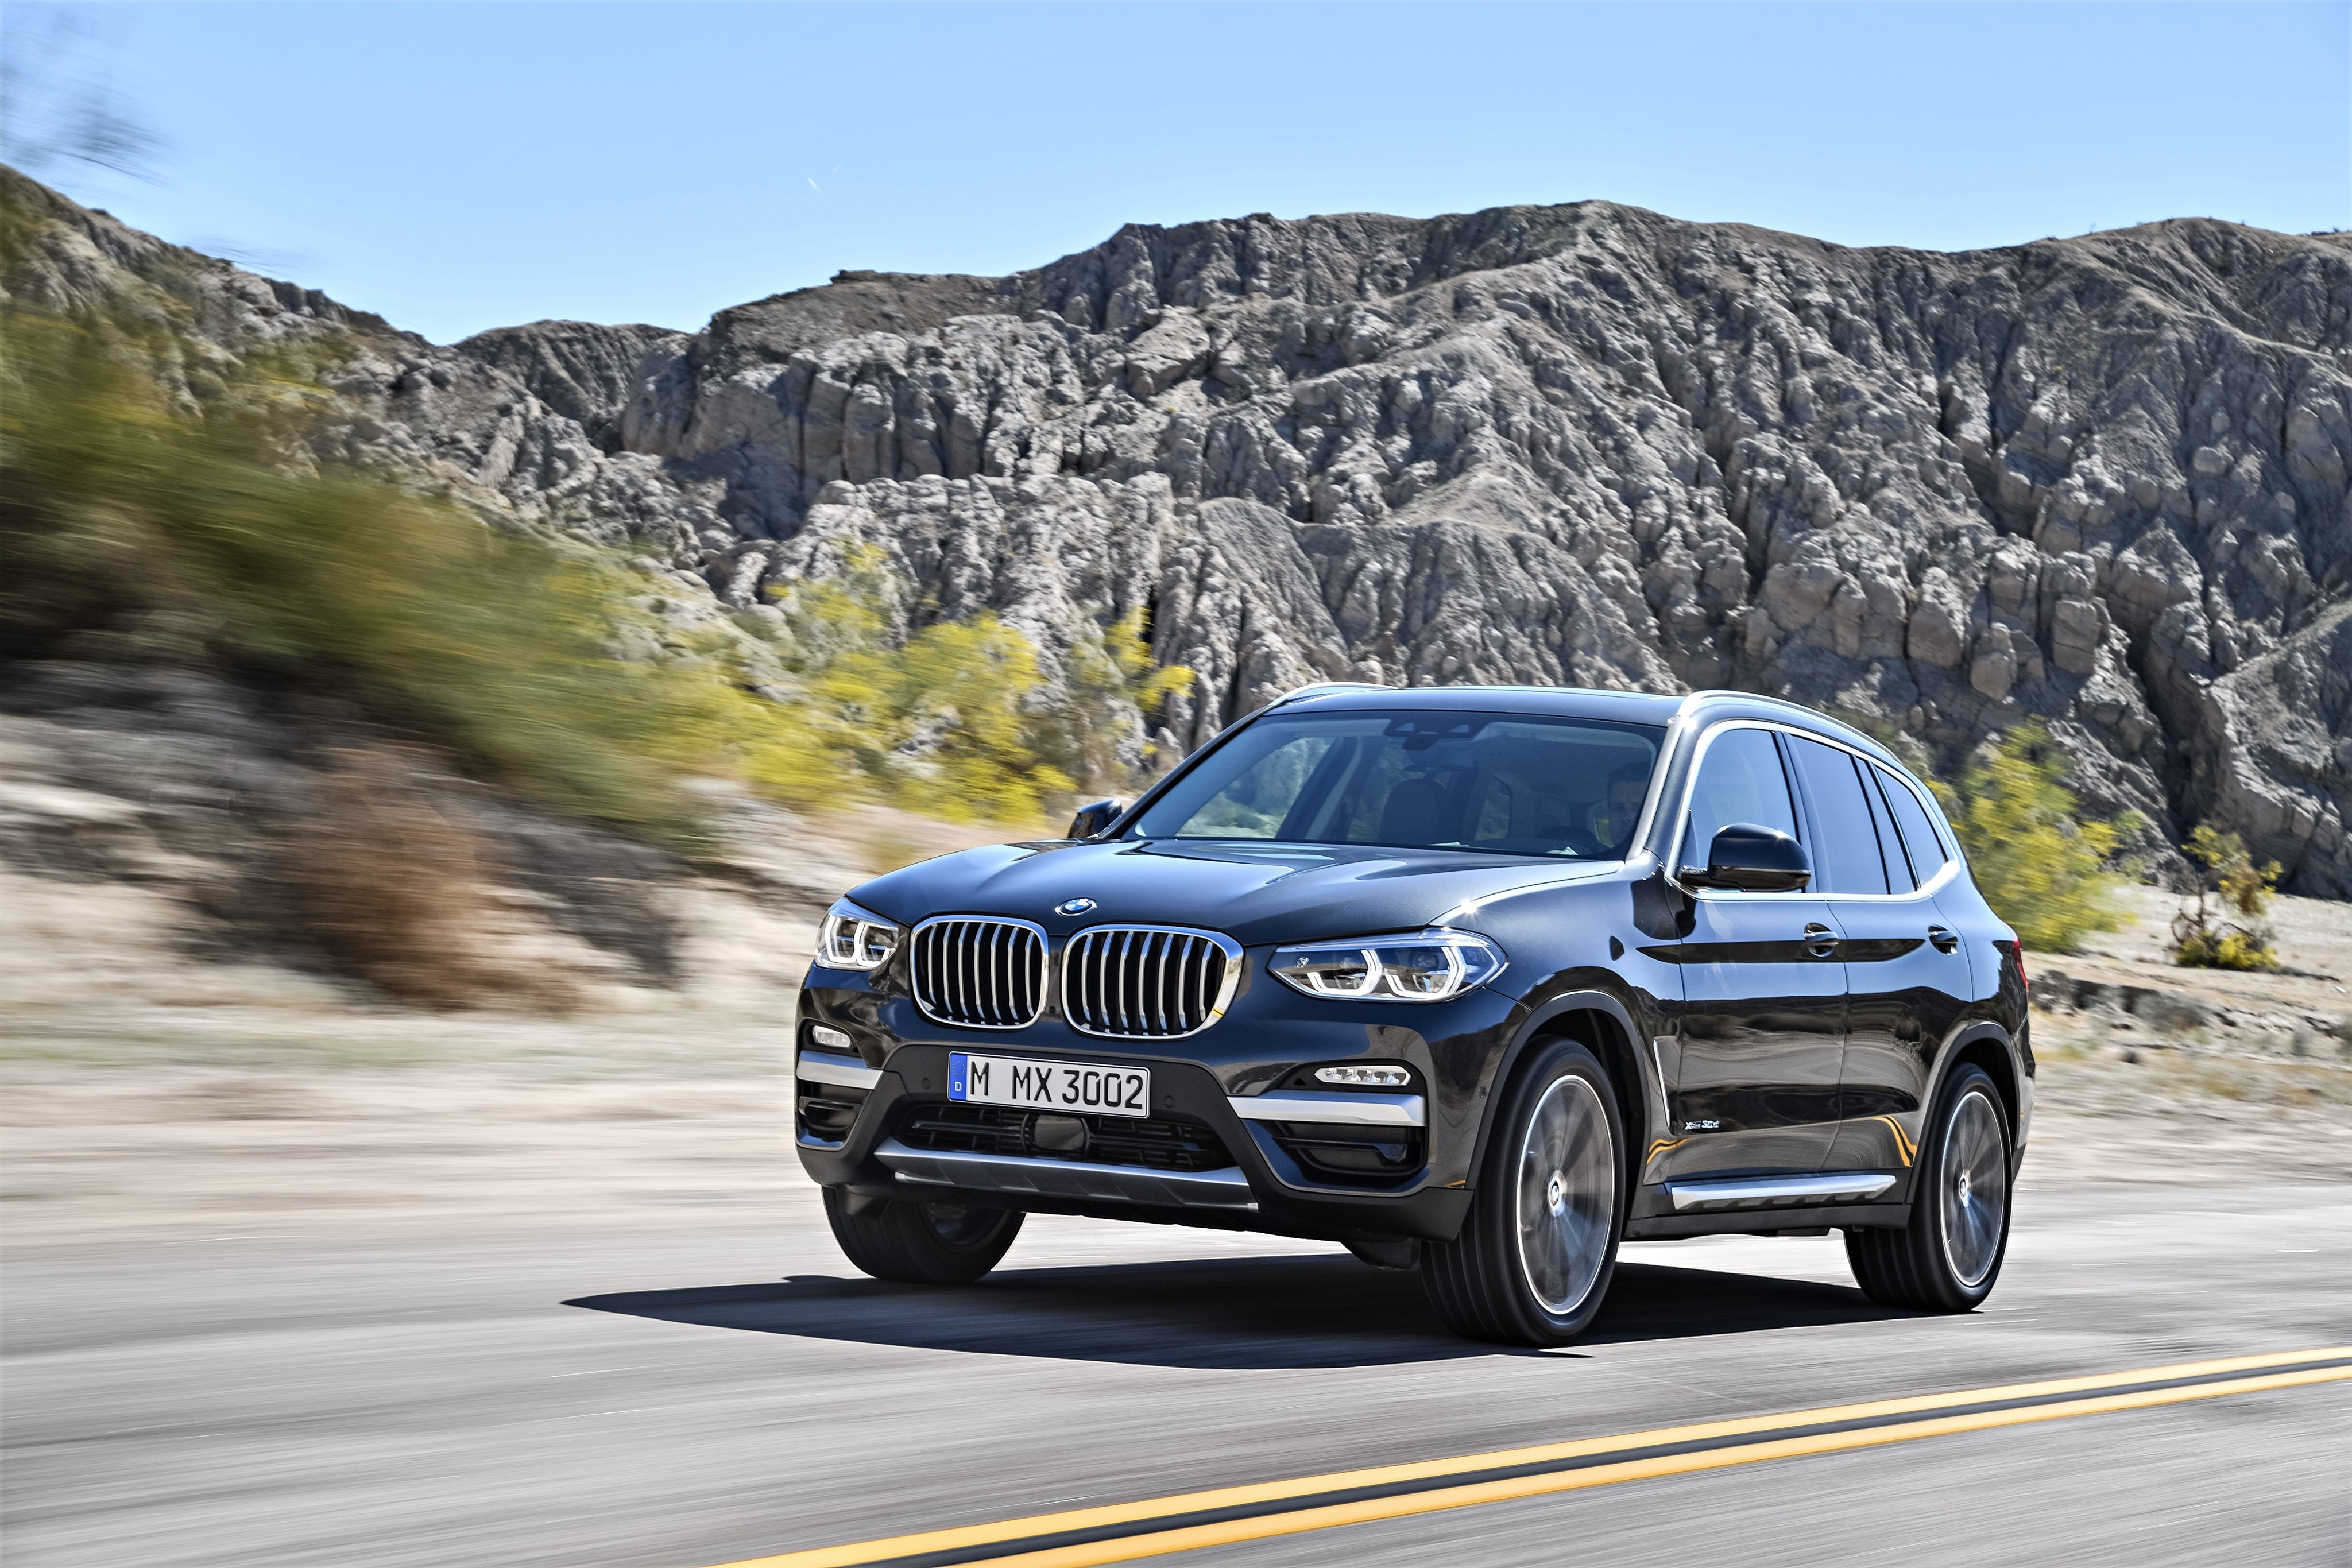 wallpaper bmw x3 2018 cars 4k cars bikes 16195. Black Bedroom Furniture Sets. Home Design Ideas